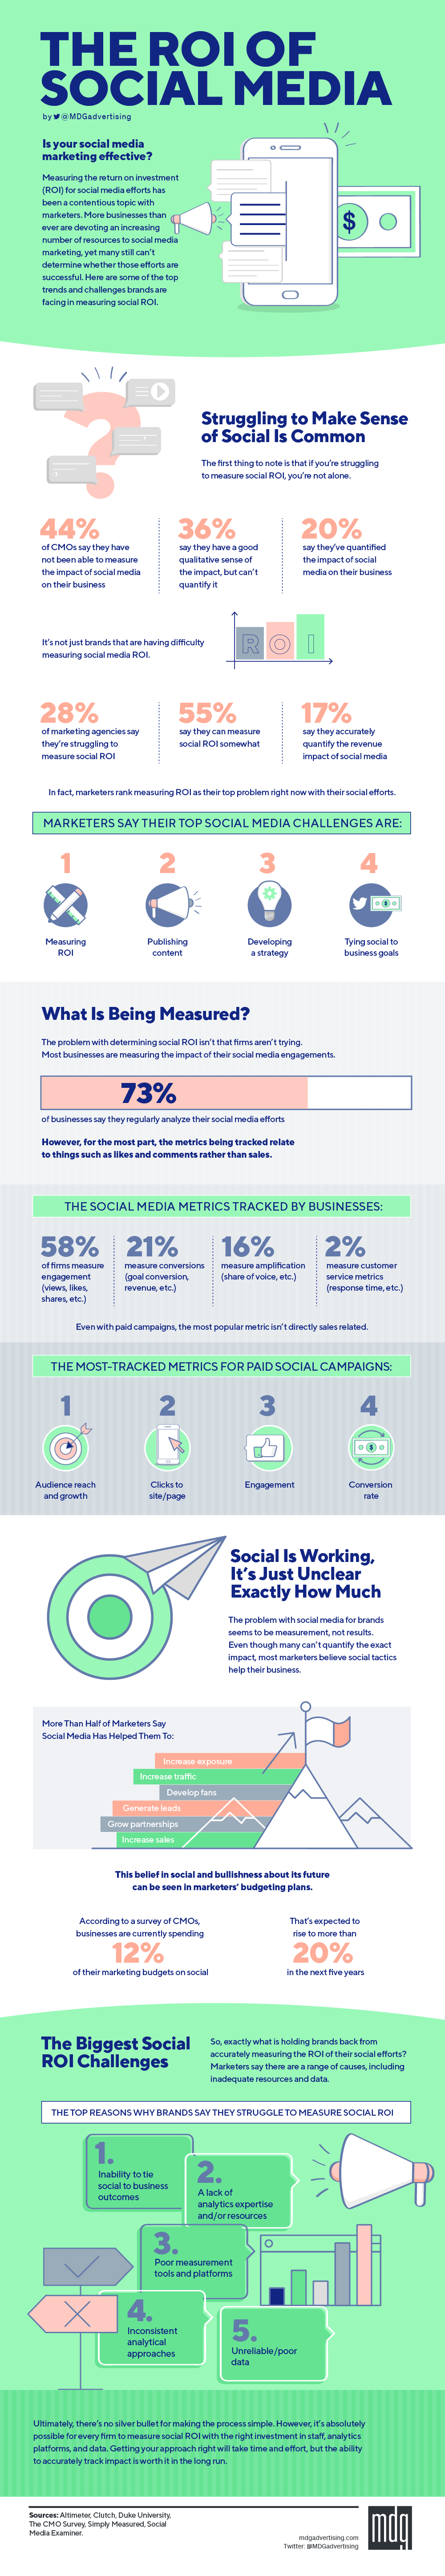 Social Media ROI Statistics: What to Expect from Your Investment in Social Media Marketing (INFOGRAPHIC)